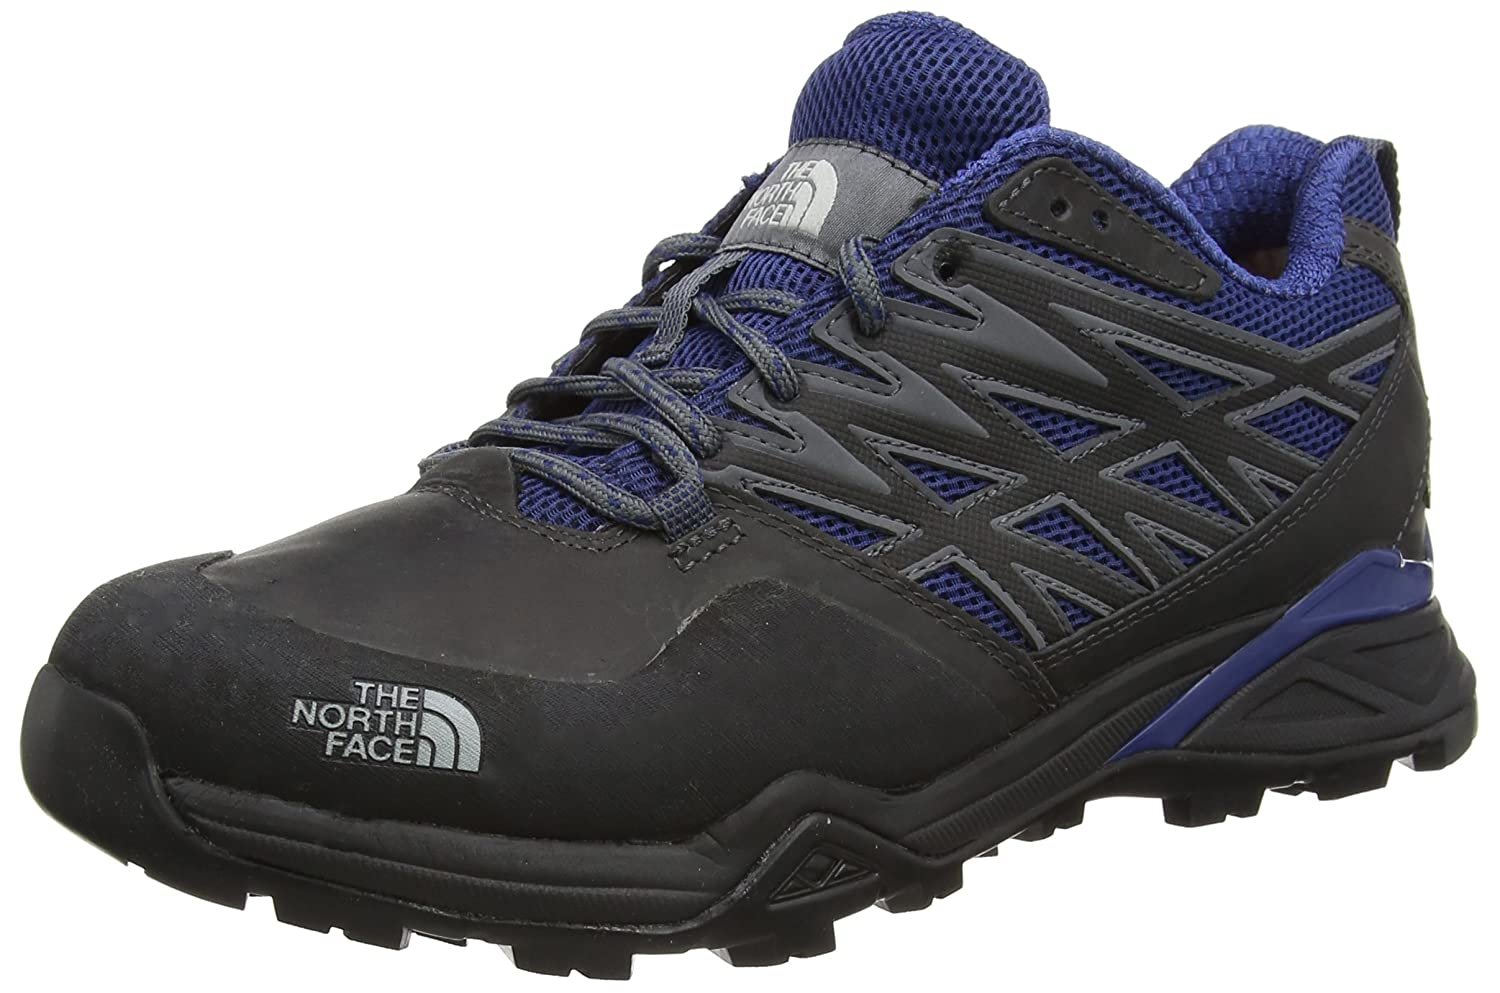 3cf39ec10 THE NORTH FACE Men's Hedgehog GTX Low Rise Hiking Shoes